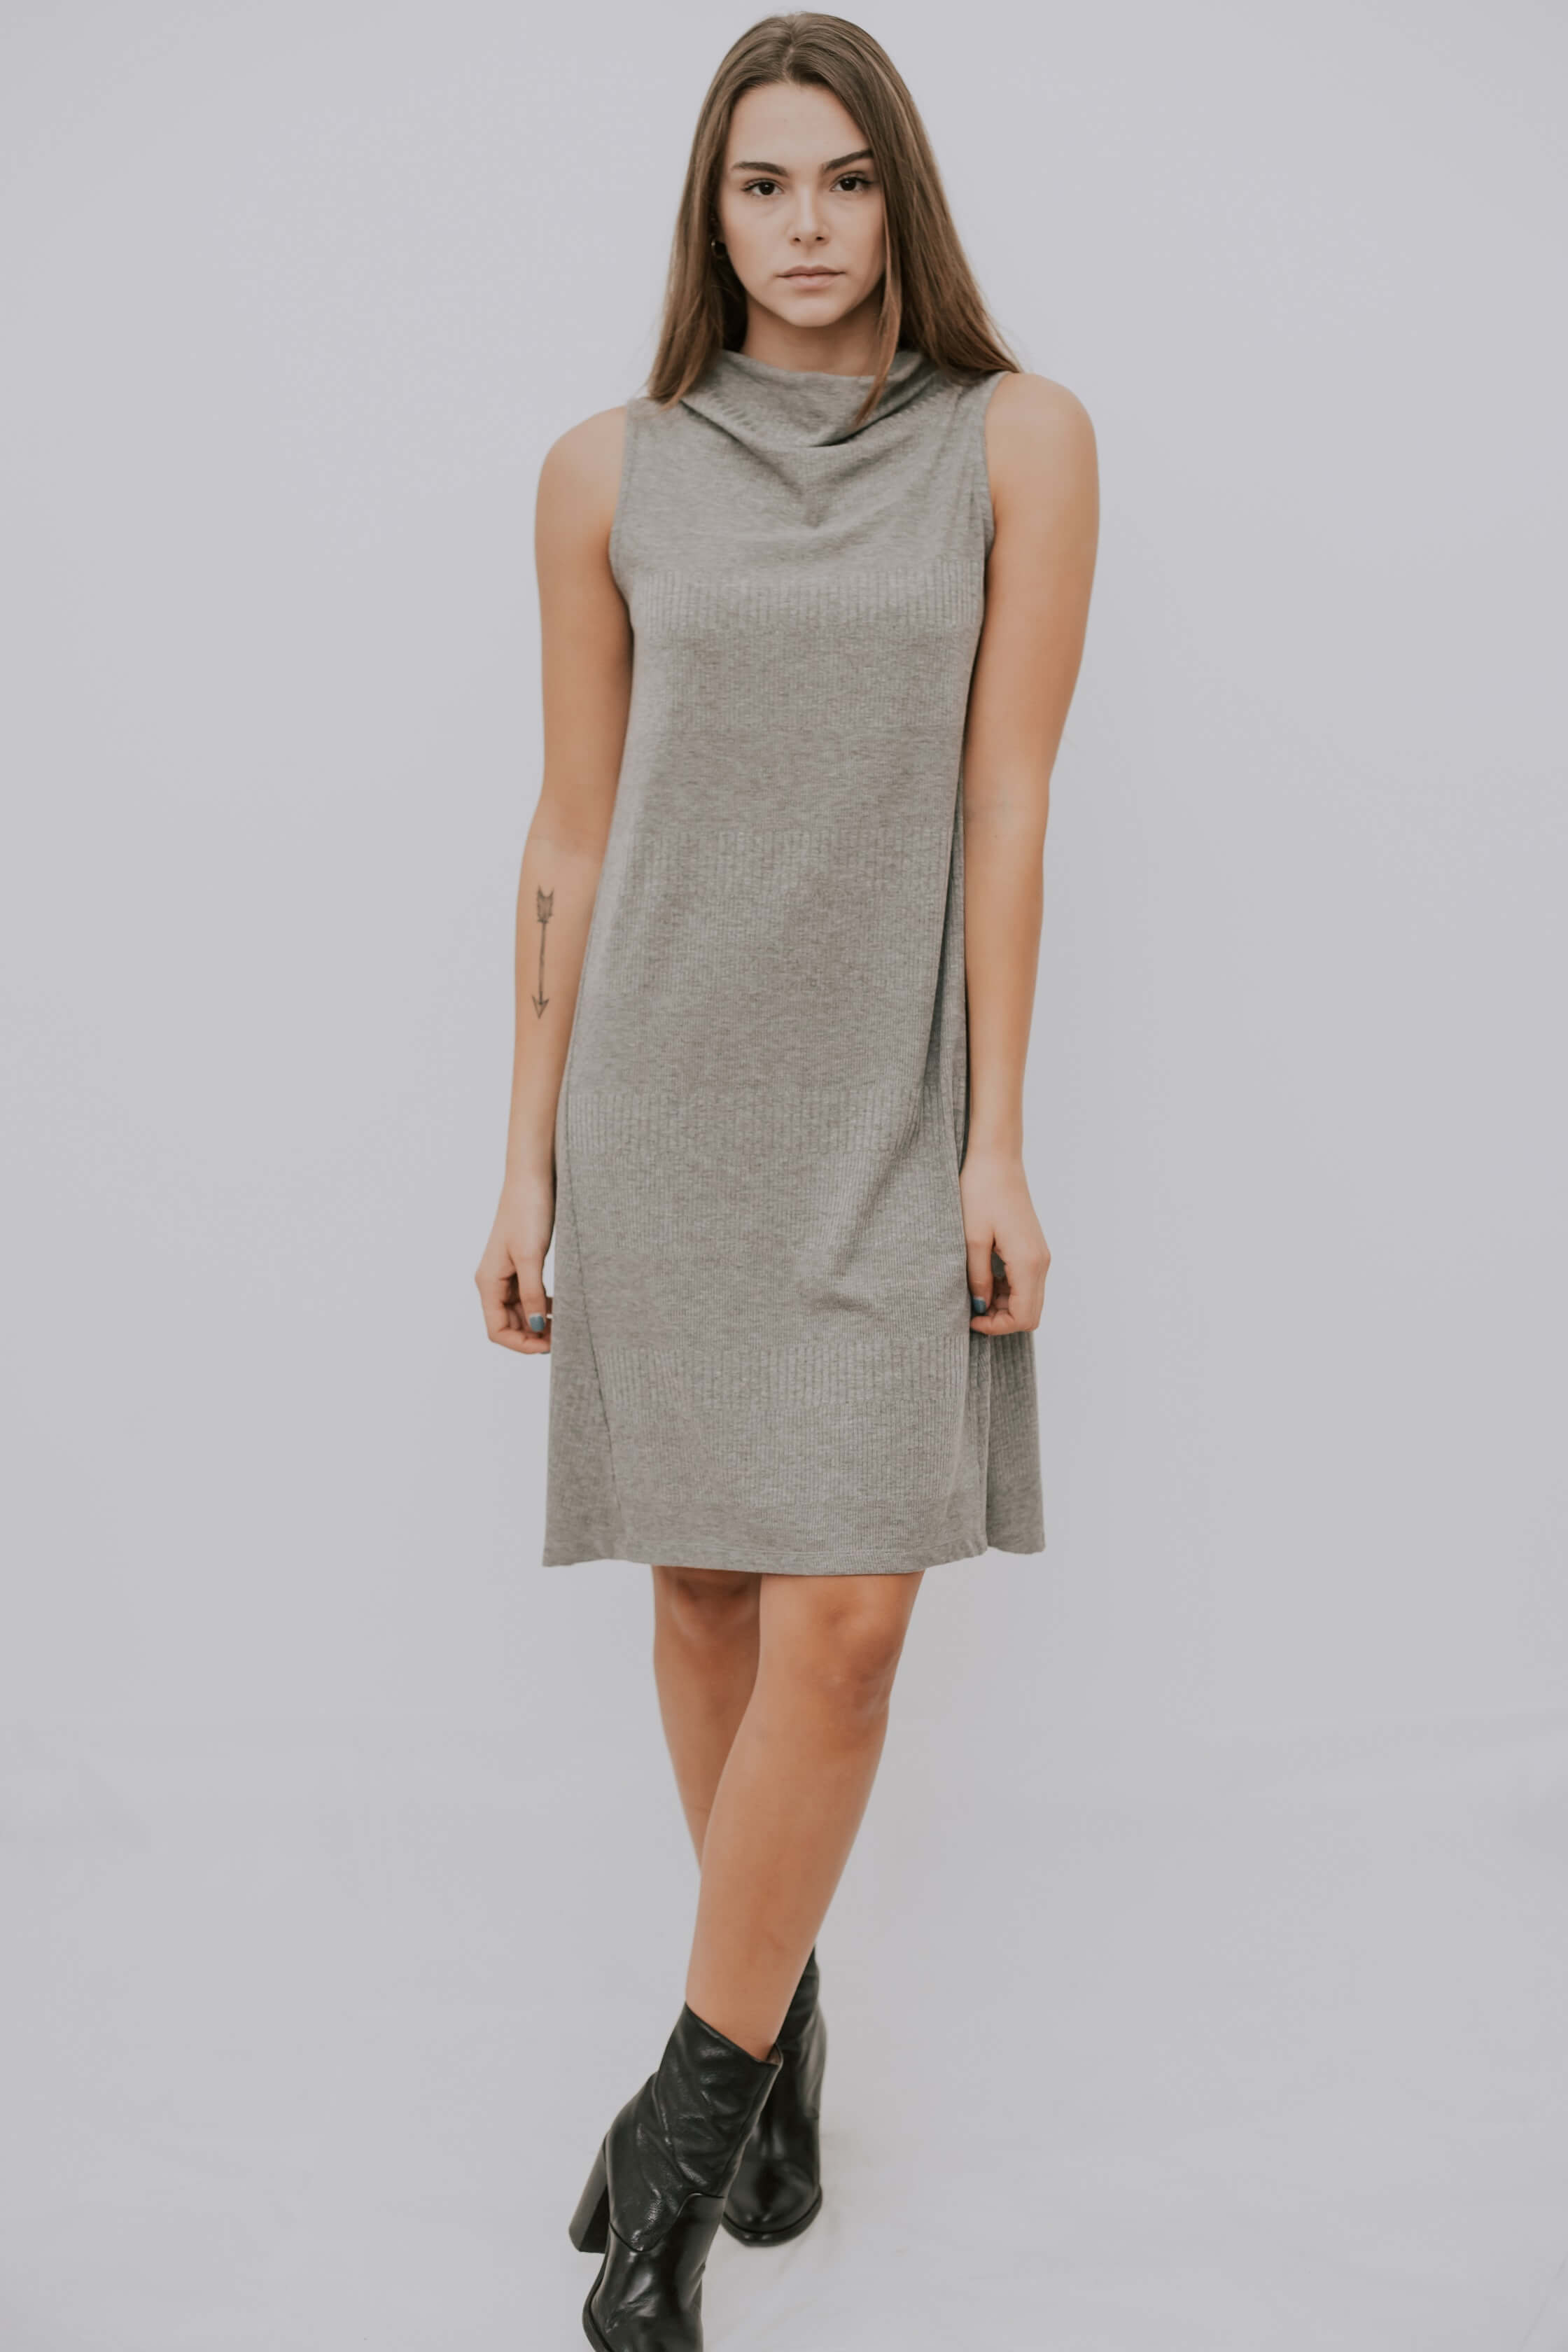 KAMILA DRESS - LIGHT GRAY